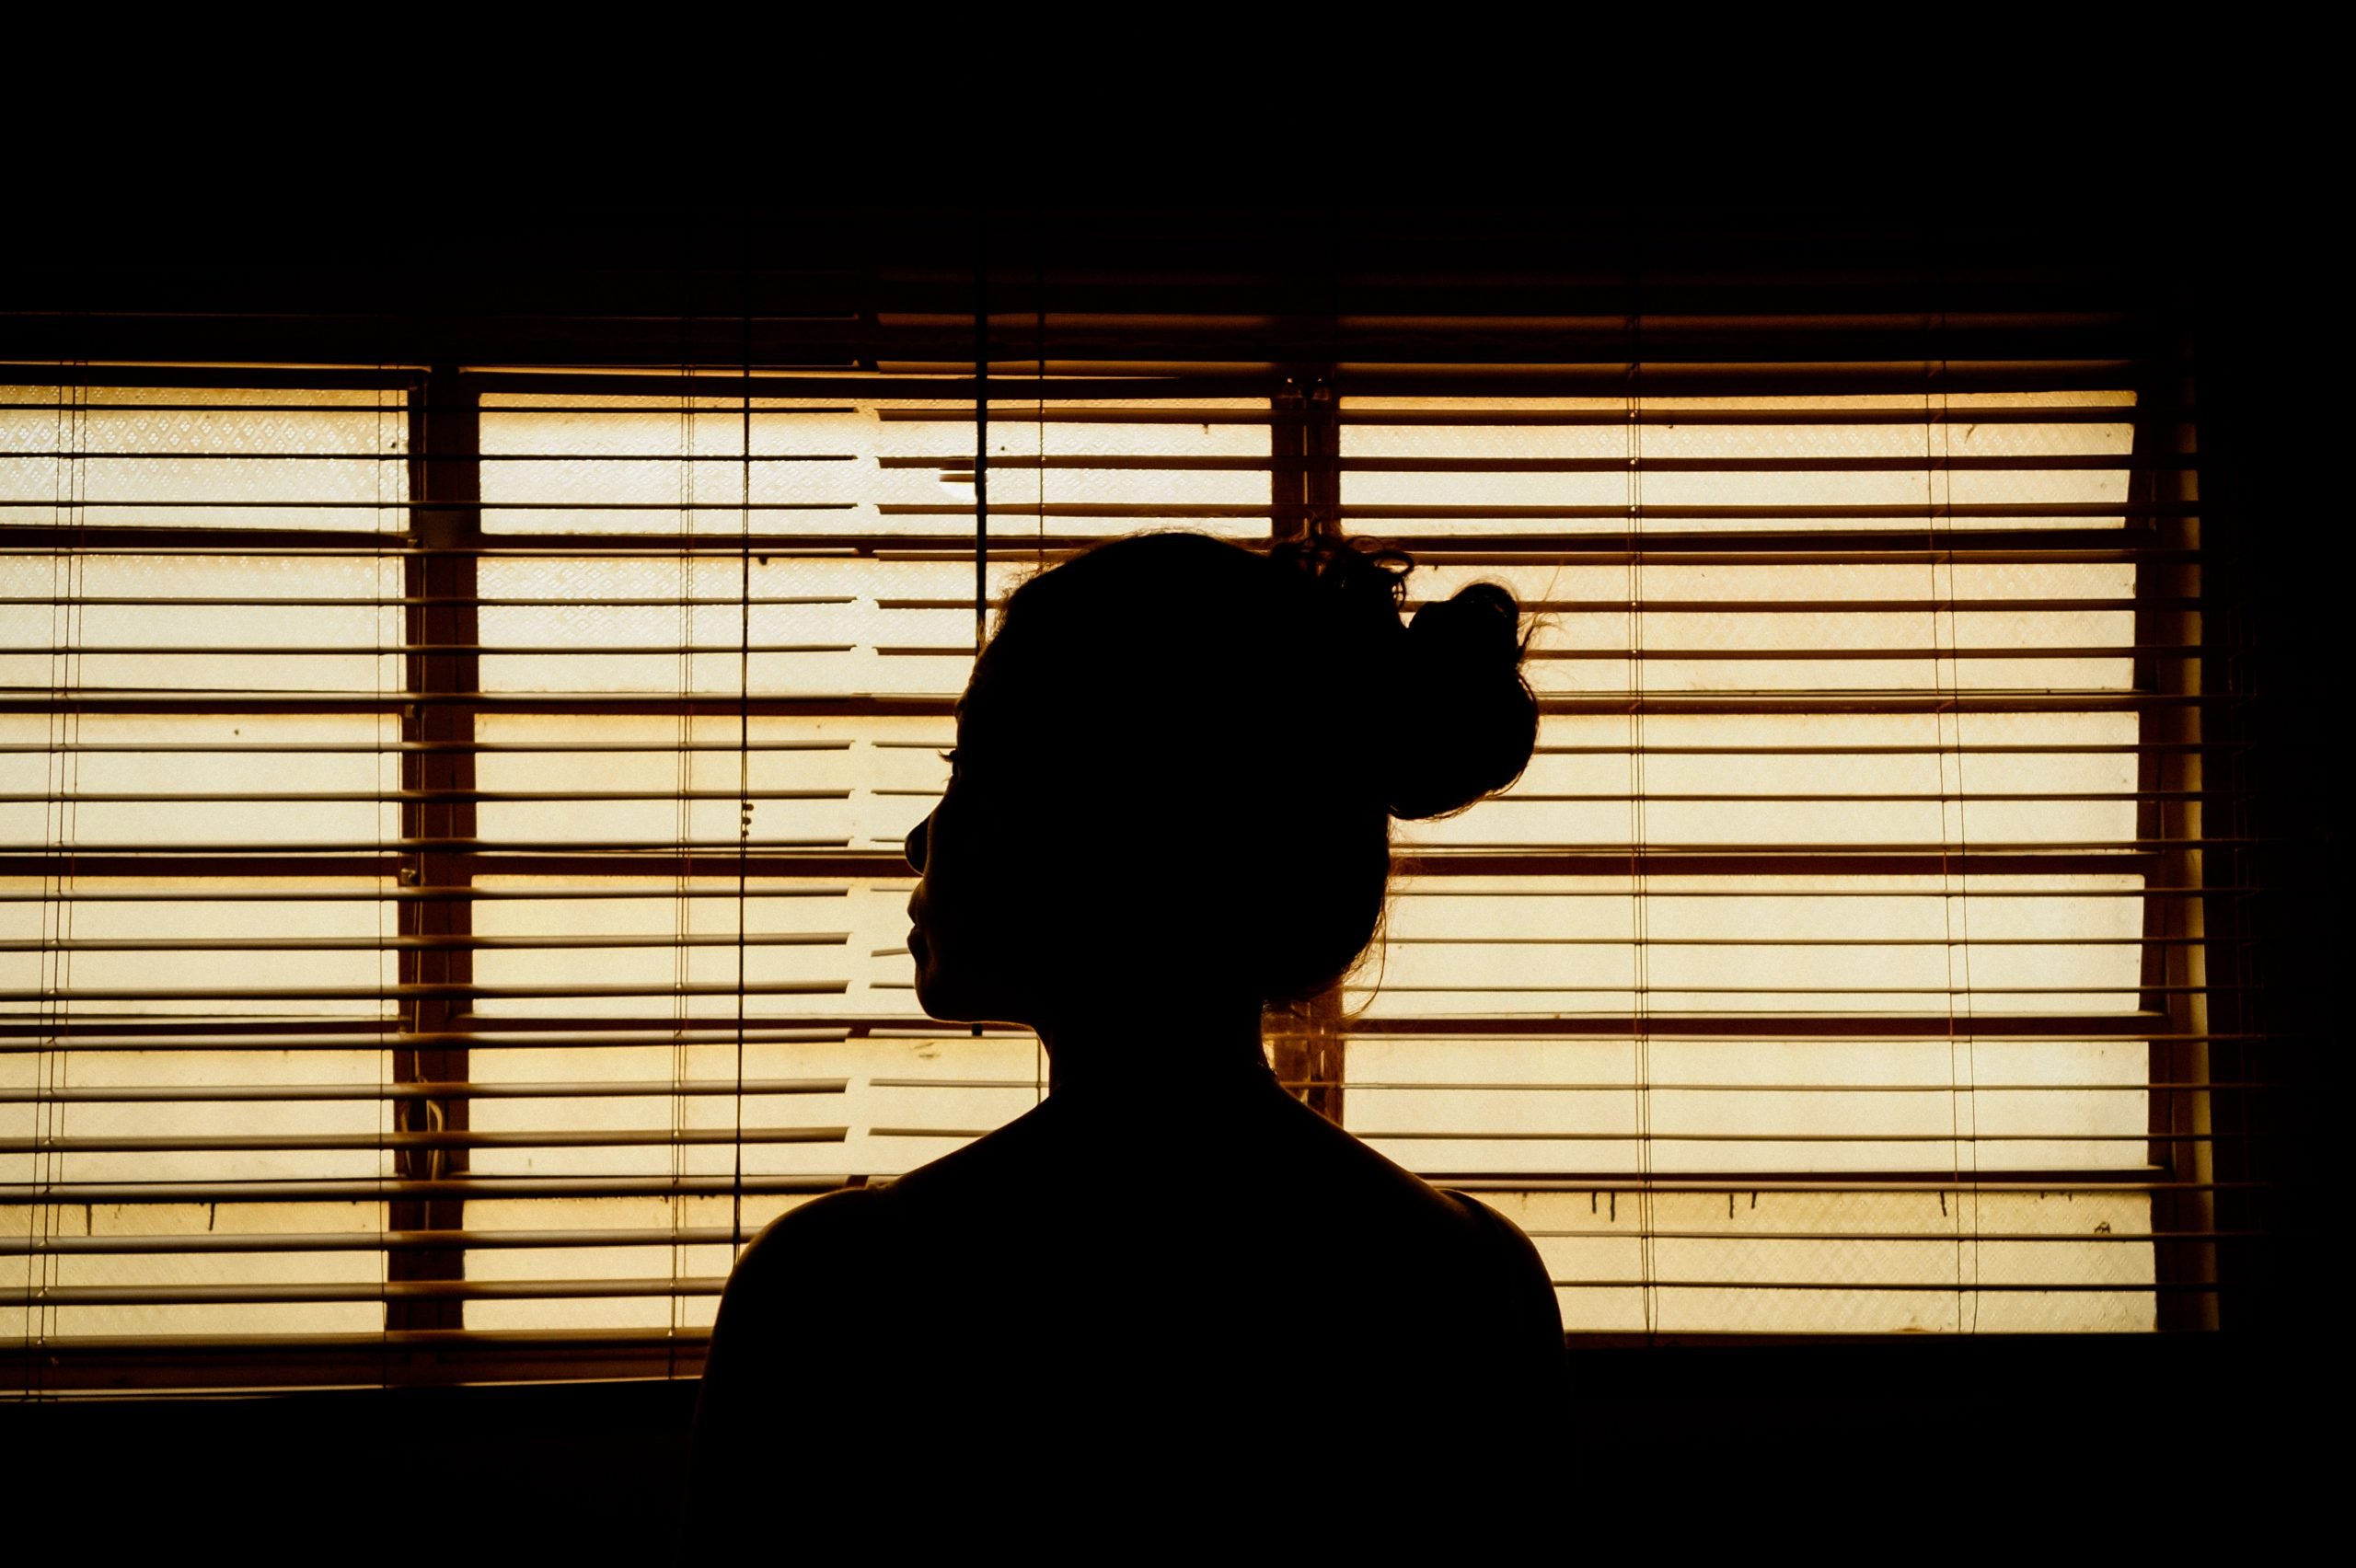 Silhouette of a woman in front of a window with the blinds shut